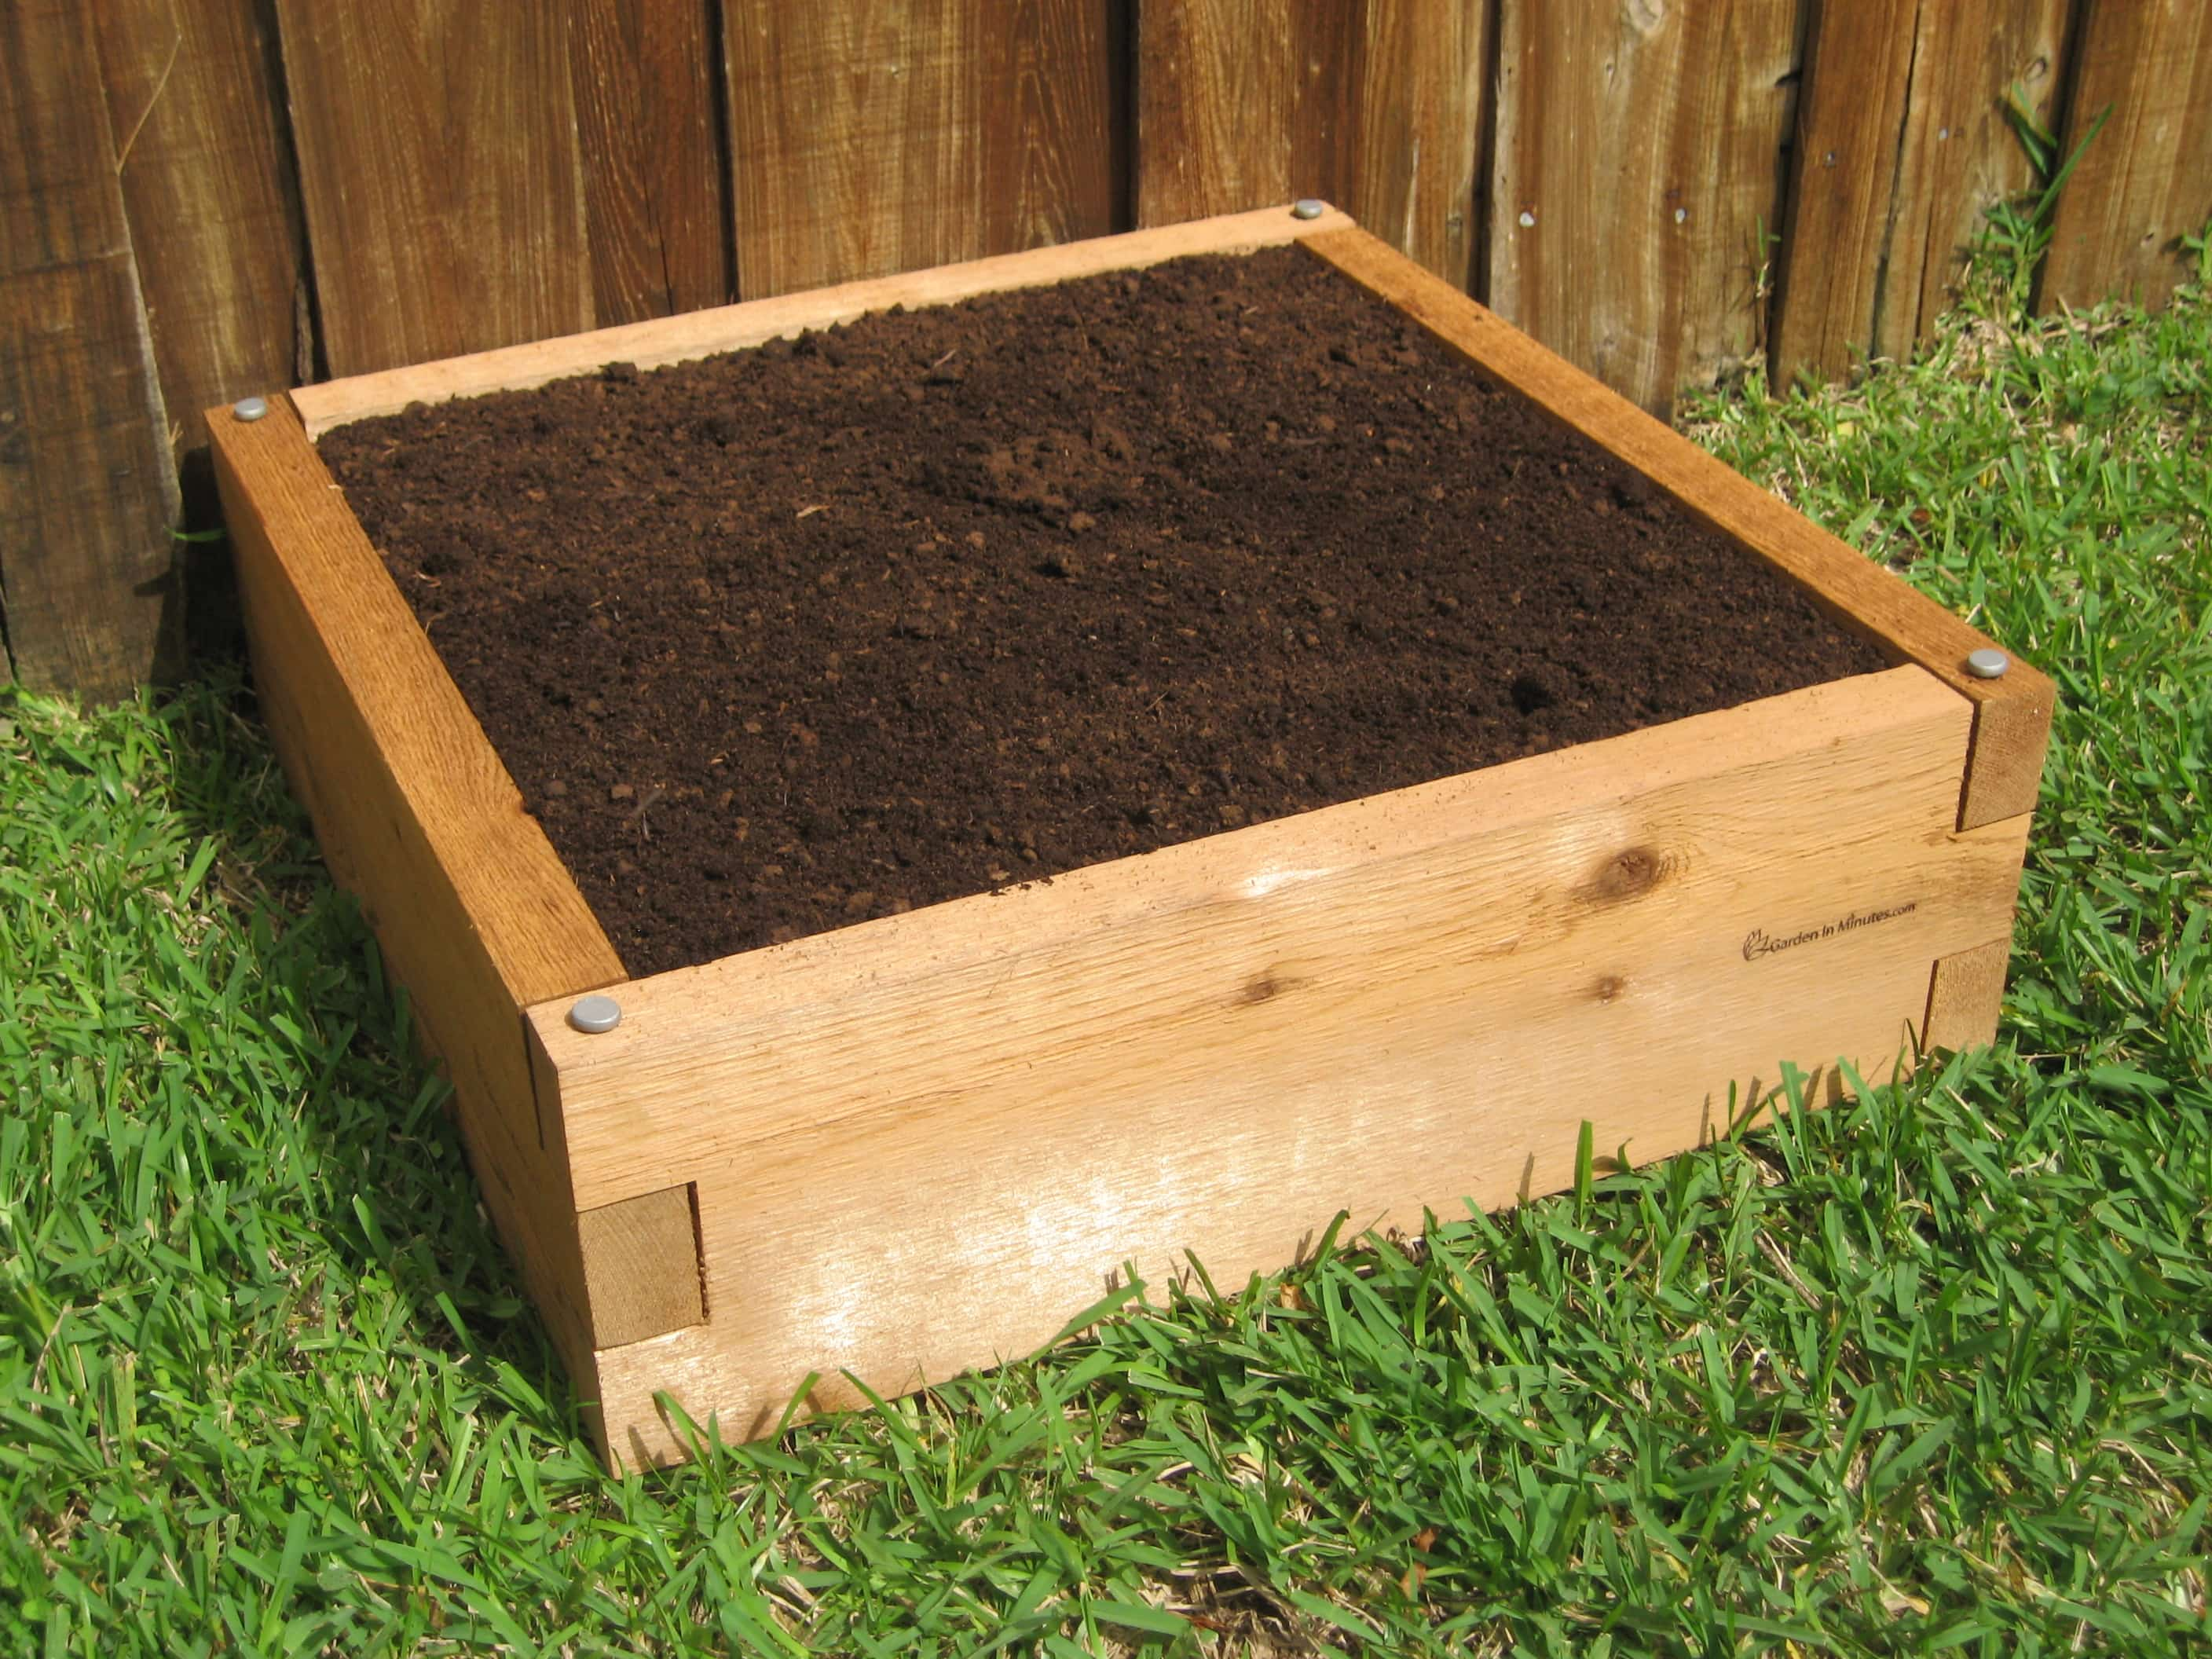 How to Build Raised Garden Beds: Raised Bed Gardening | The Old Farmer ...